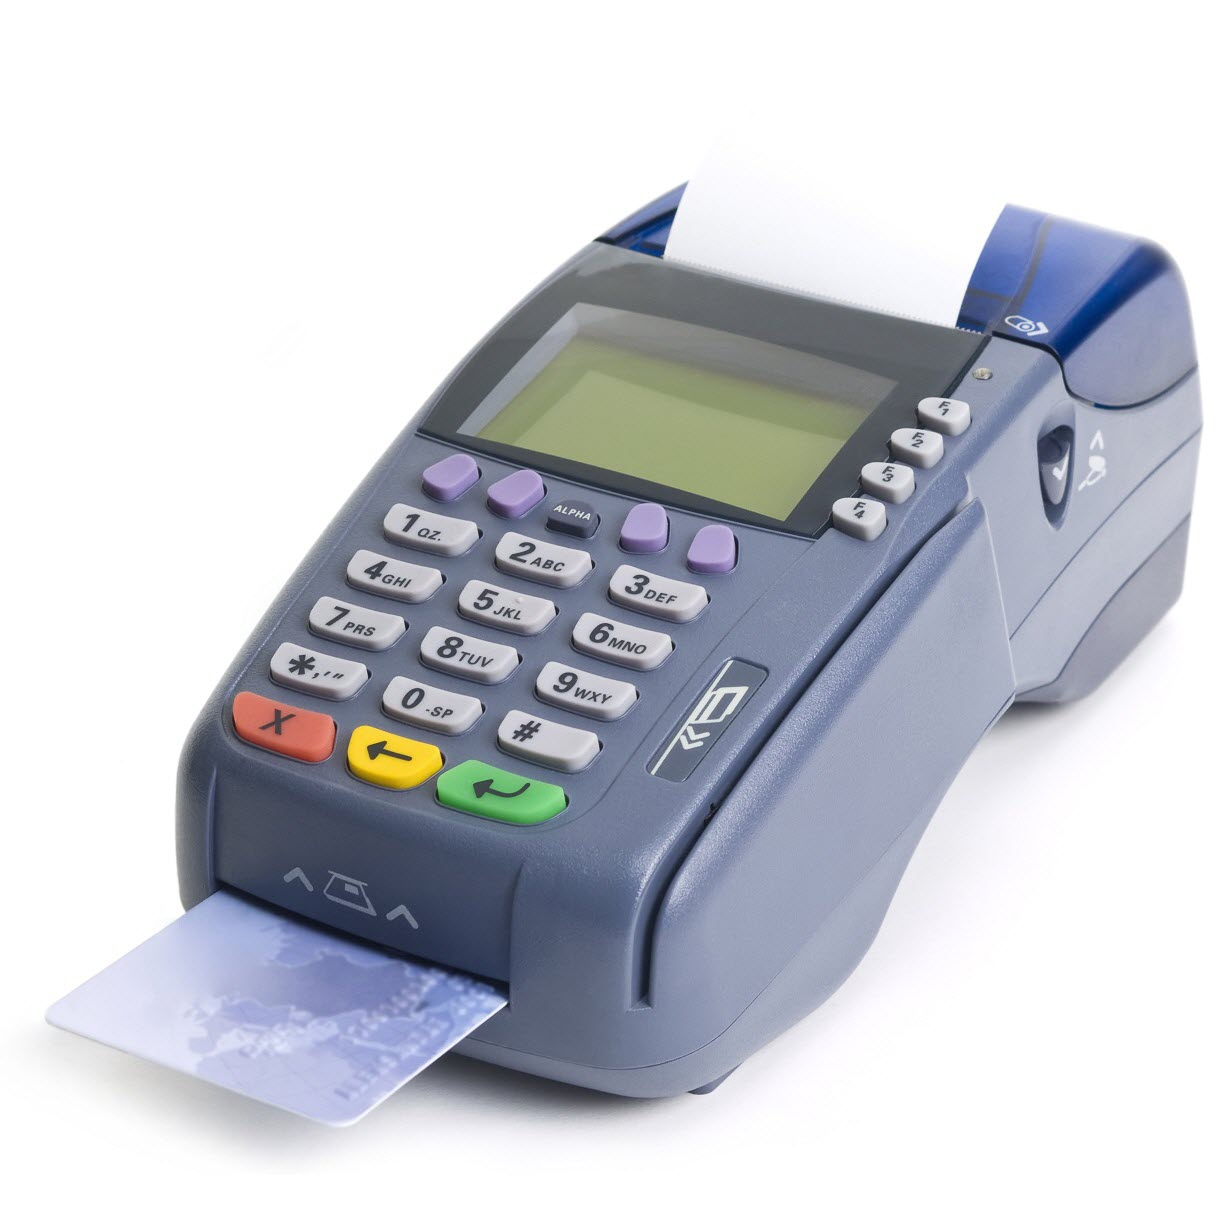 EFTPOS integration